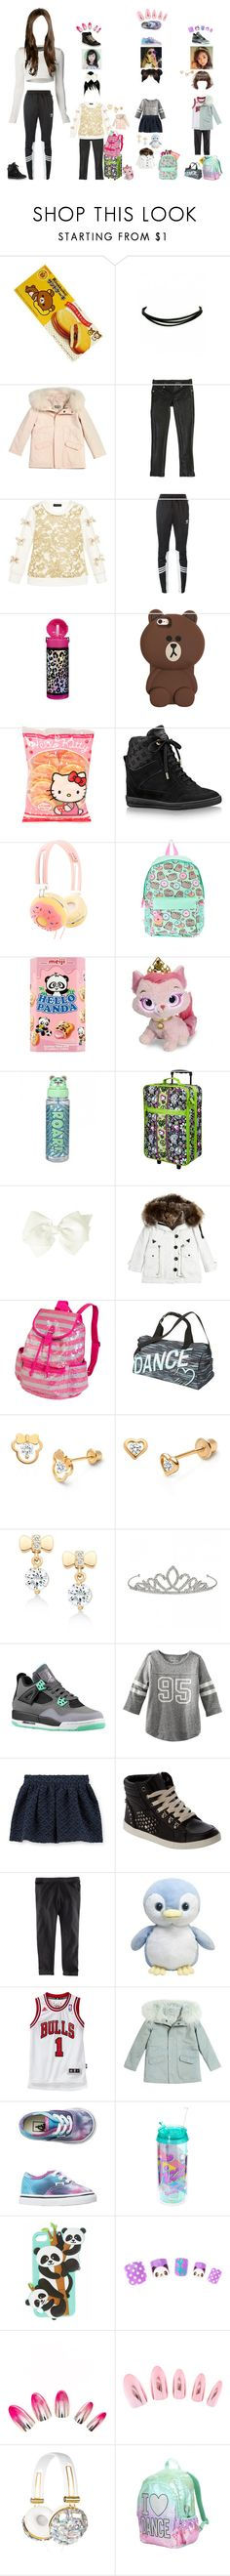 """Kaeligh dropping the girls off"" by kaelighoffical ❤ liked on Polyvore featuring Yves Salomon, Roberto Cavalli, Kate Mack, adidas Originals, Hello Kitty, Louis Vuitton, claire's, Pusheen, Disney and Miss Grant"